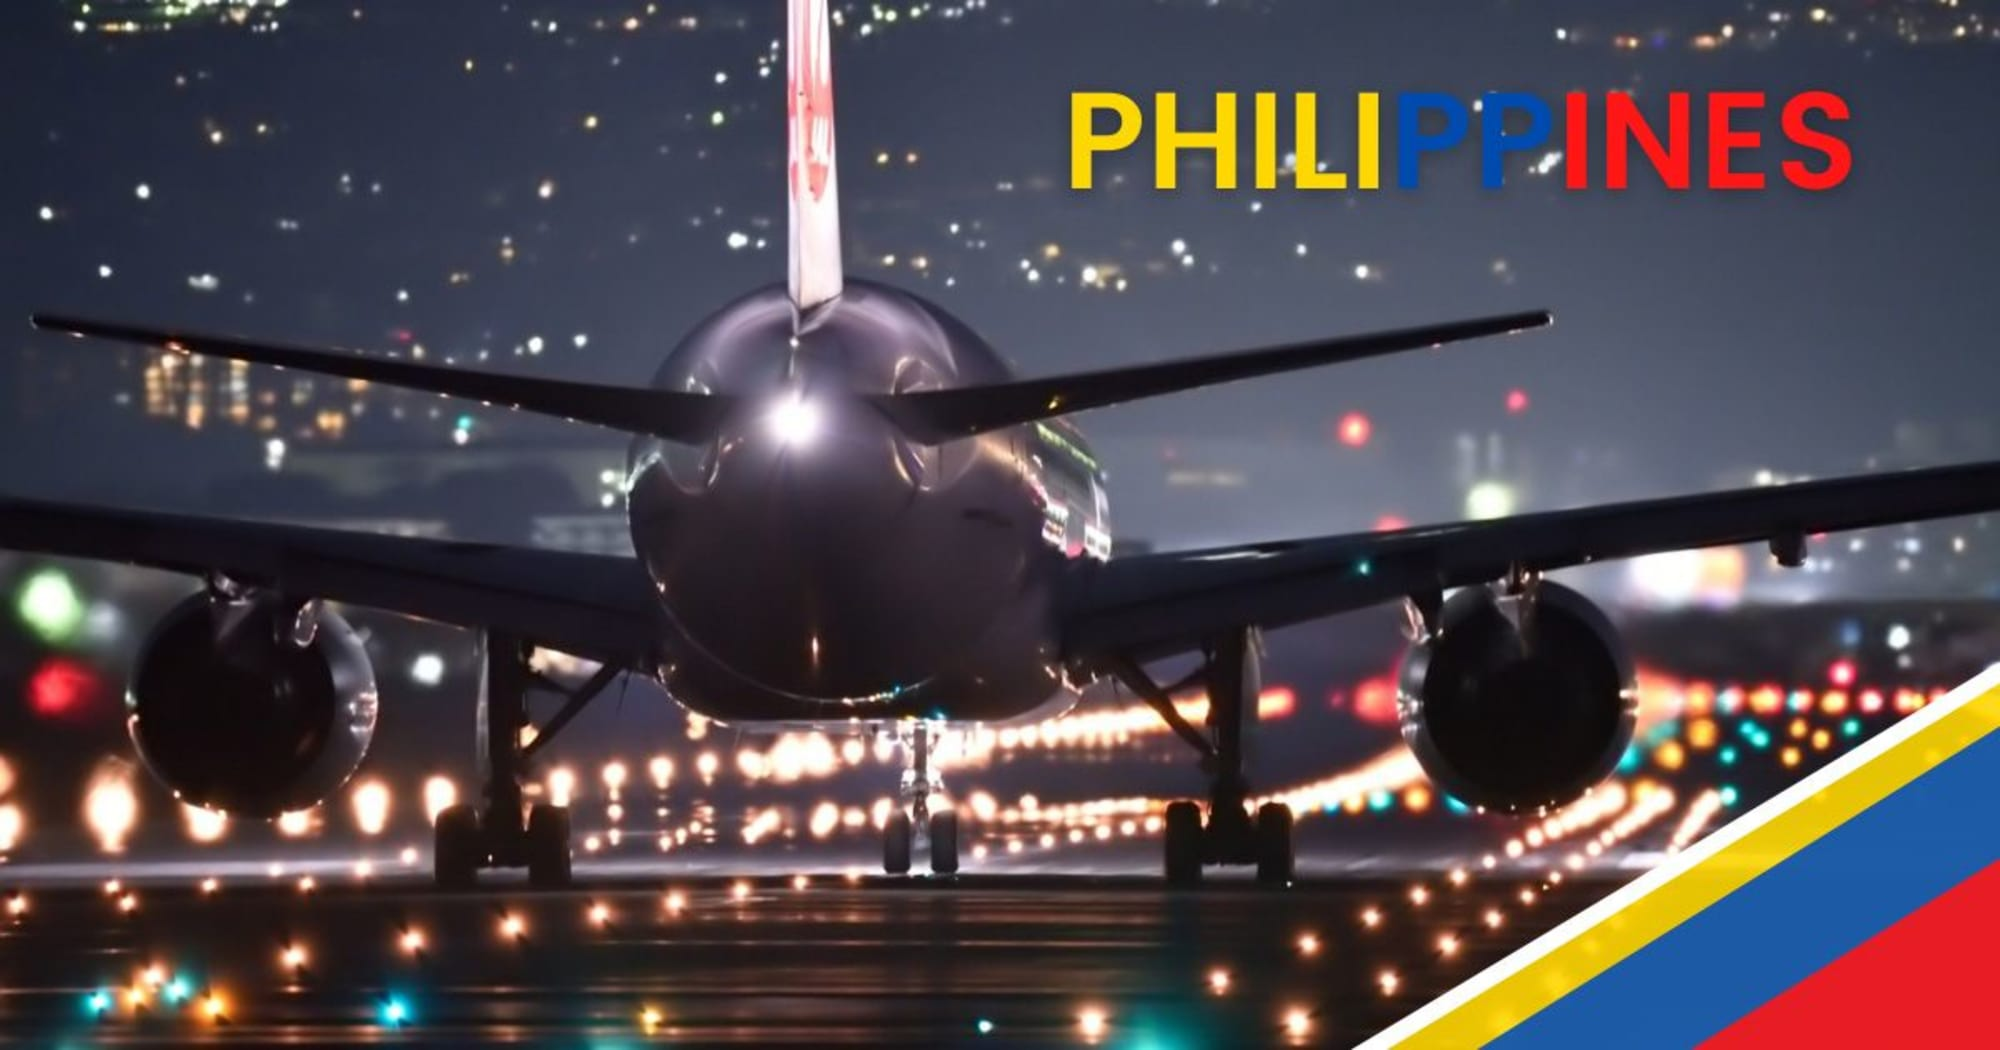 PH Travel Restriction Eases for countries known to have cases of the new COVID-19 variant